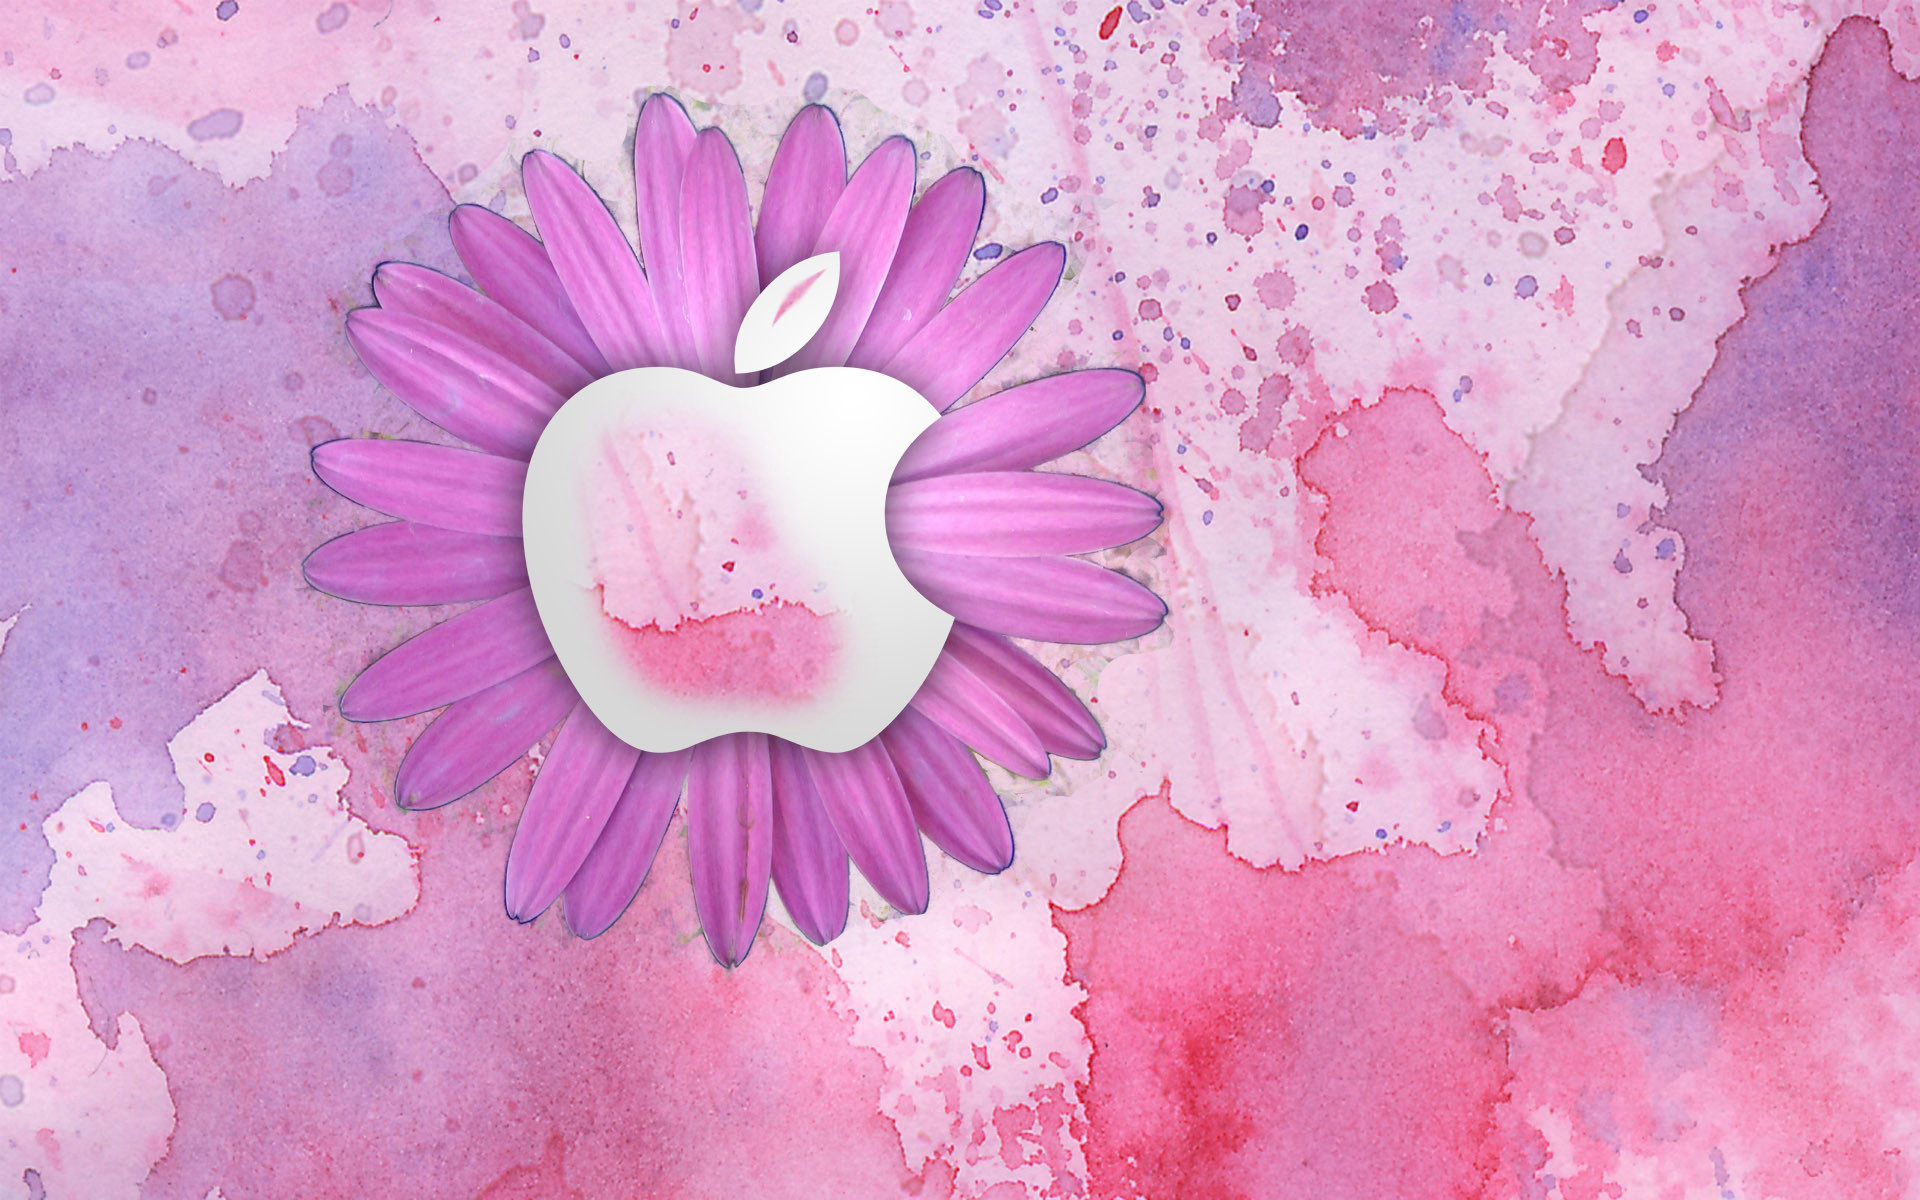 100% Quality HD Creative Girly Pictures